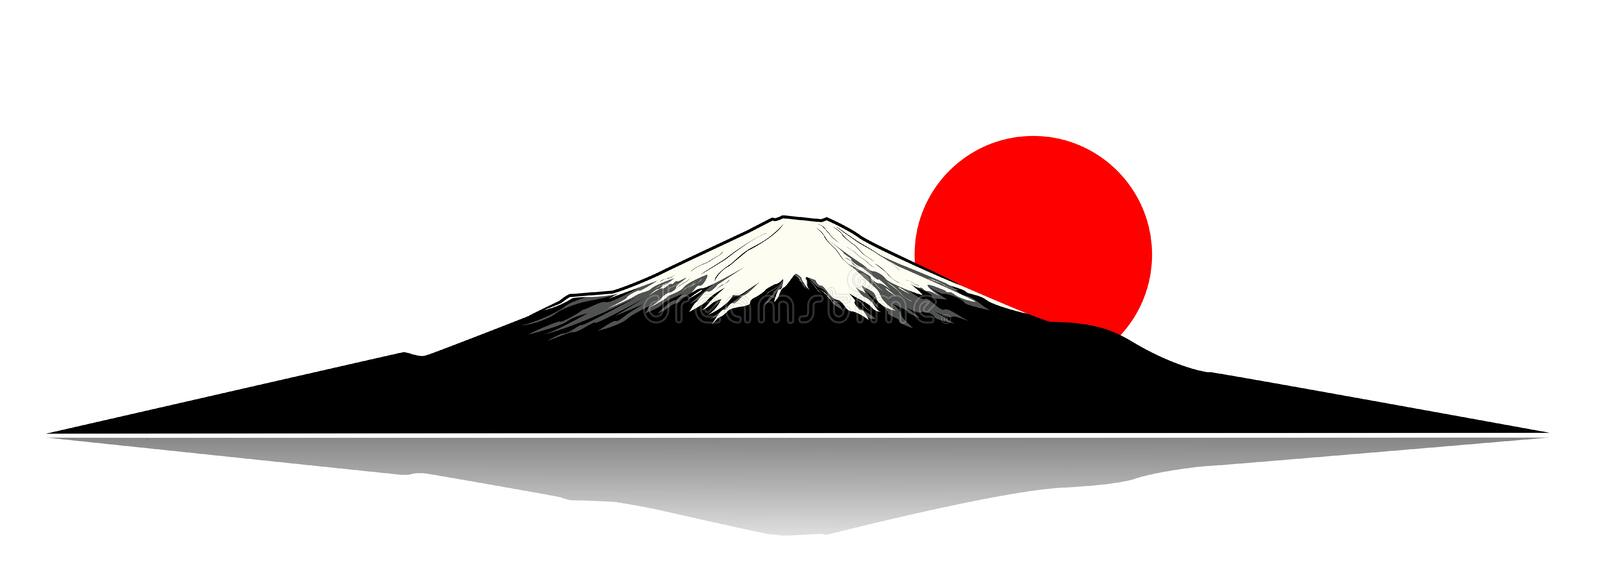 Mount Fuji vector illustration